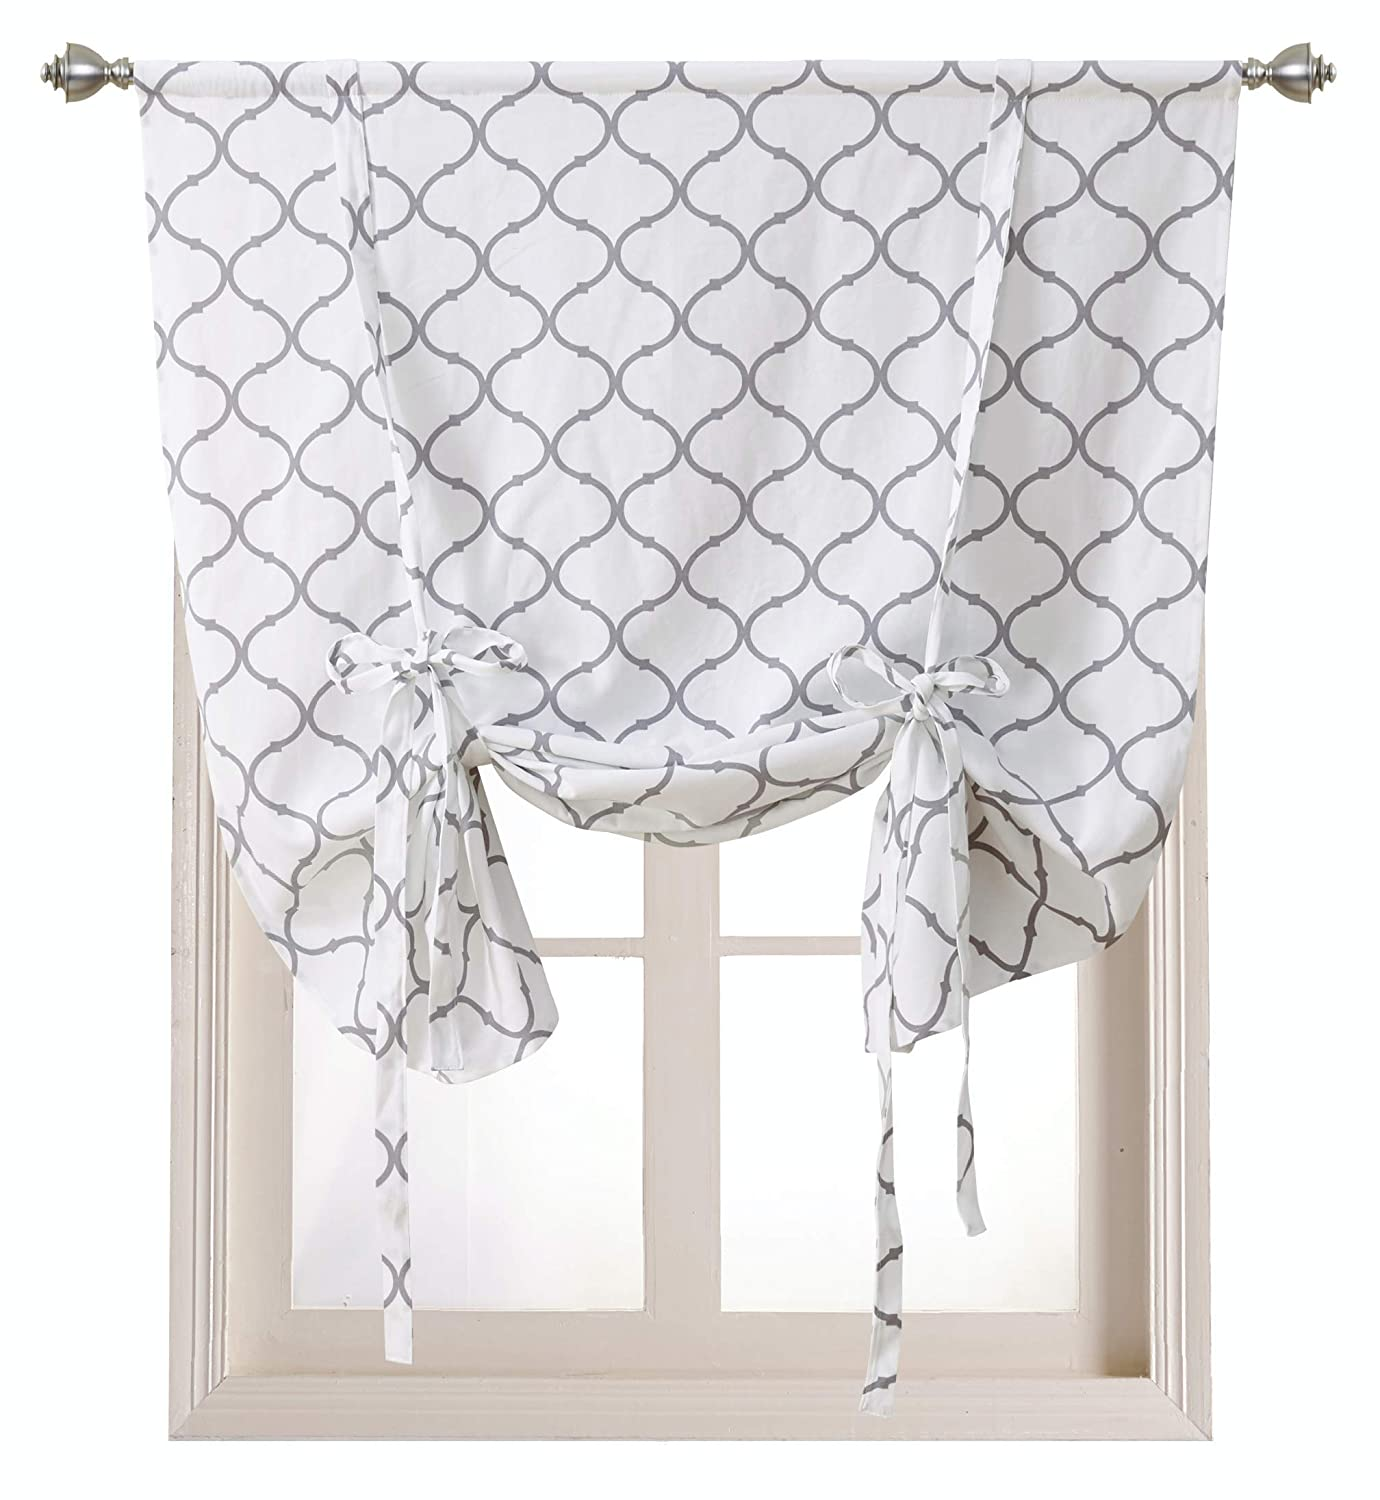 Regal Home Collections Shabby Lattice Kitchen Curtains - Assorted Colors & Sizes (Hunter Gray, Tie Up Shade)